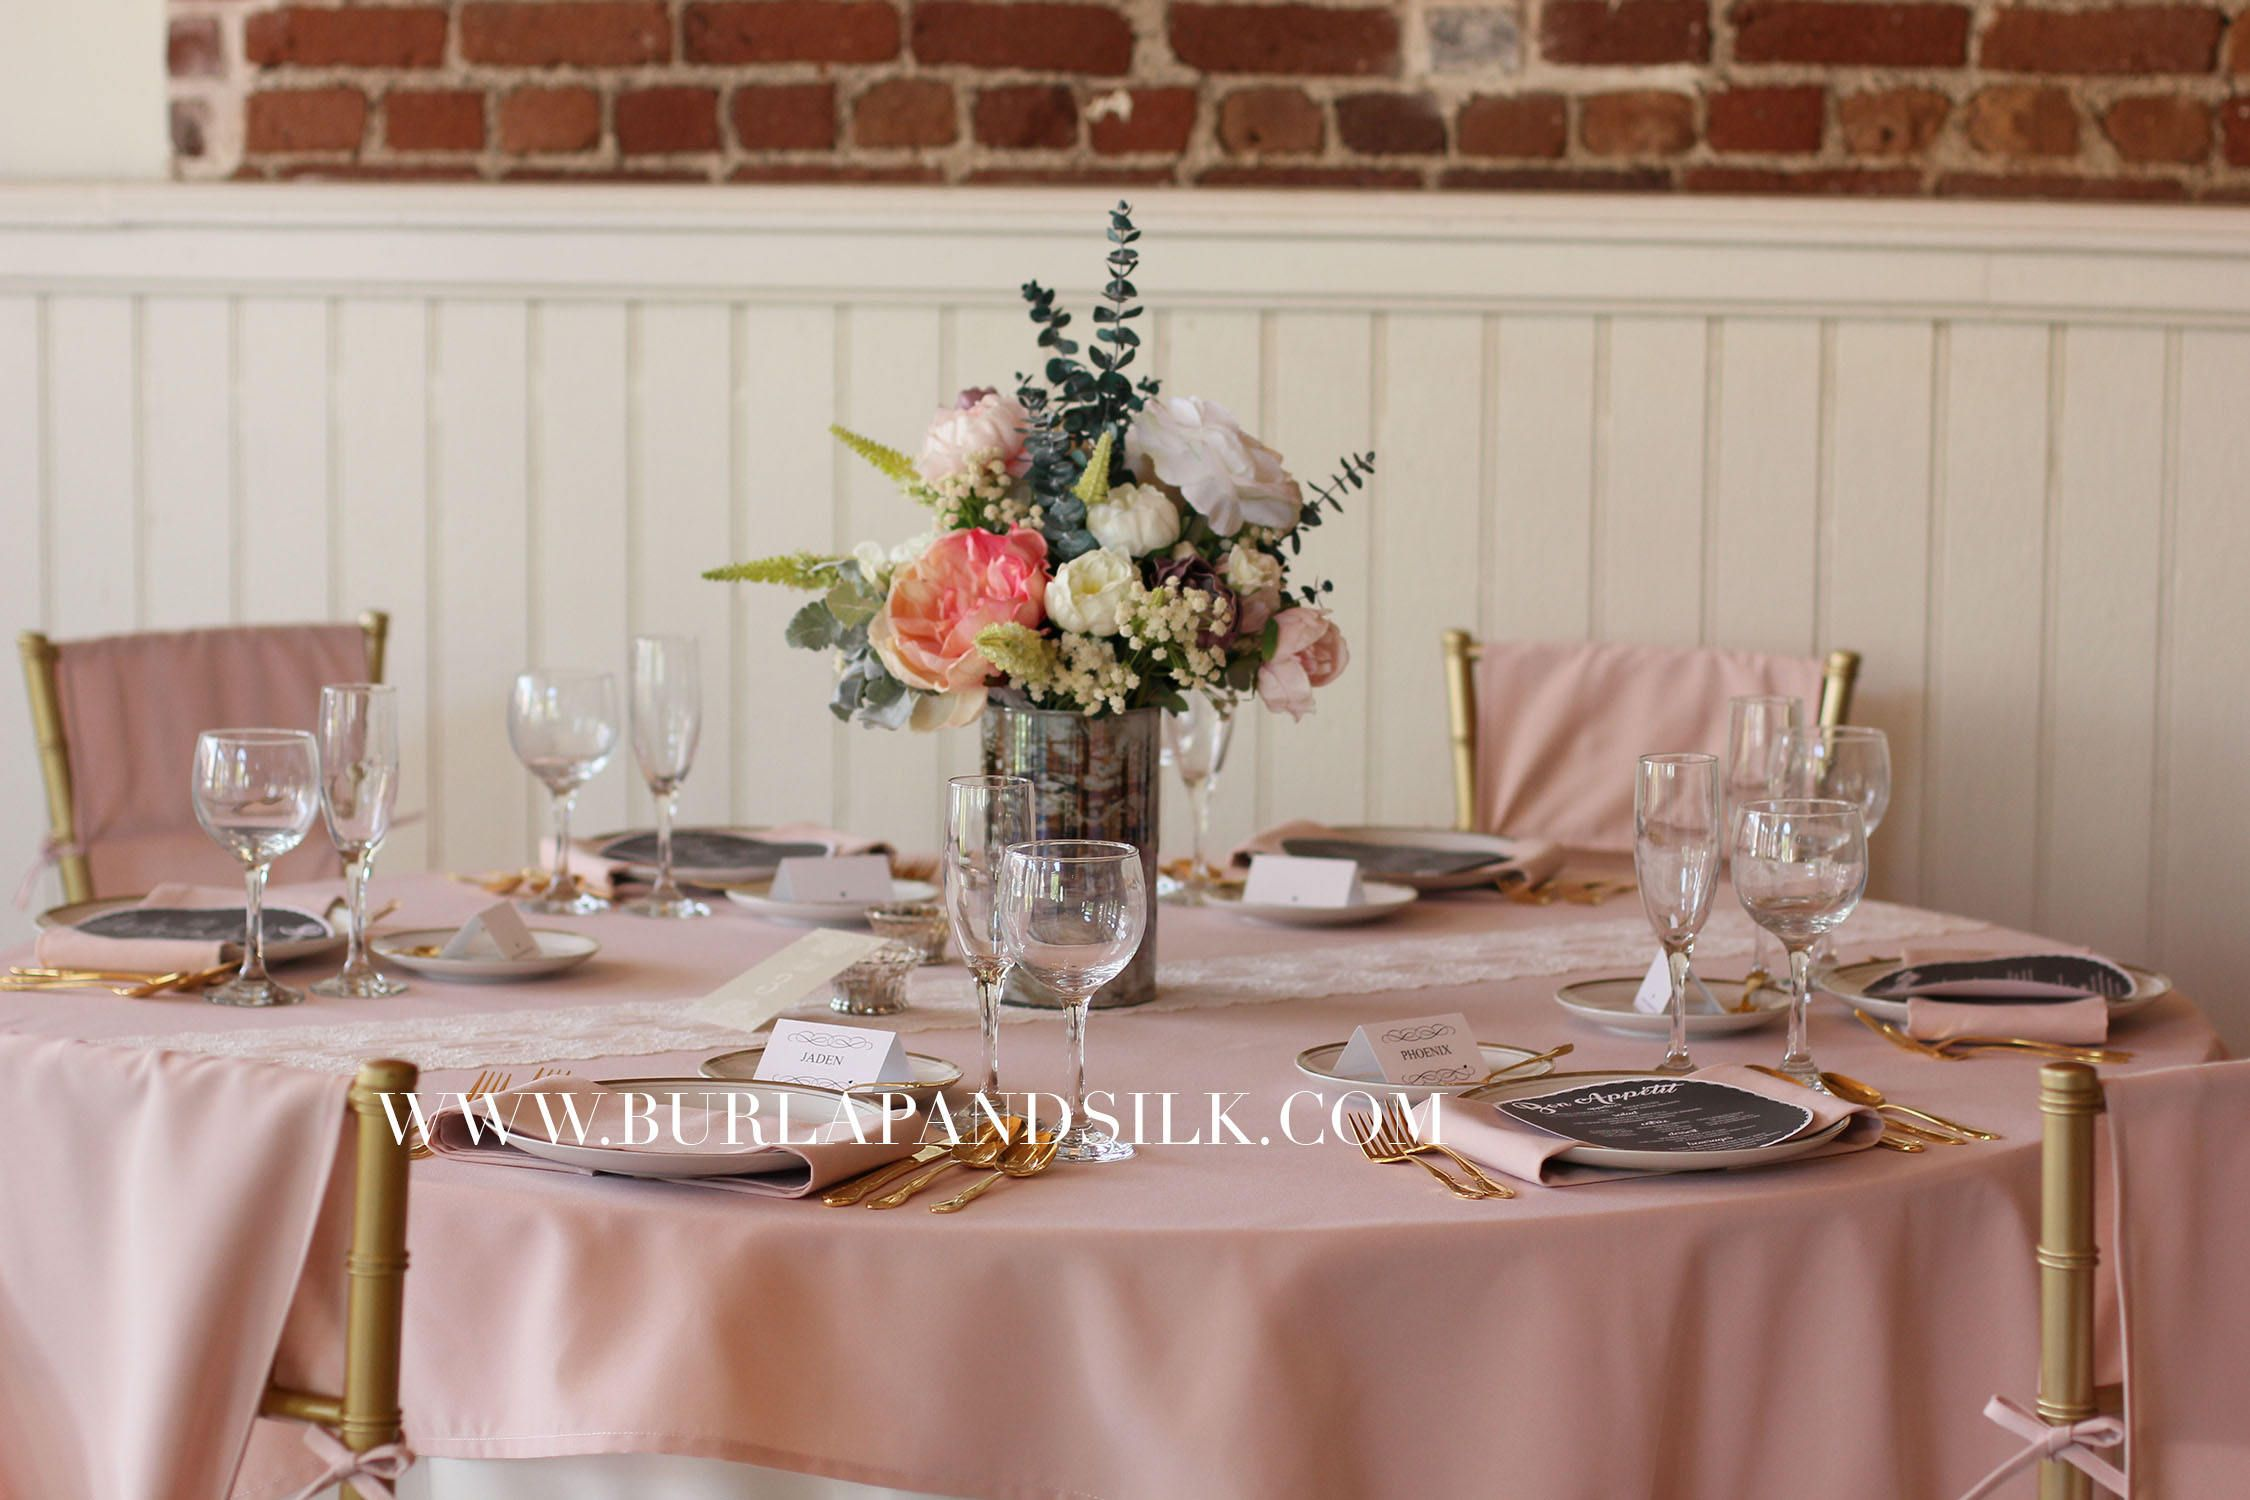 72 Inch X 72 Inch Square Blush Tablecloth, Blush Table Overlays For 5 Ft Round  Tables